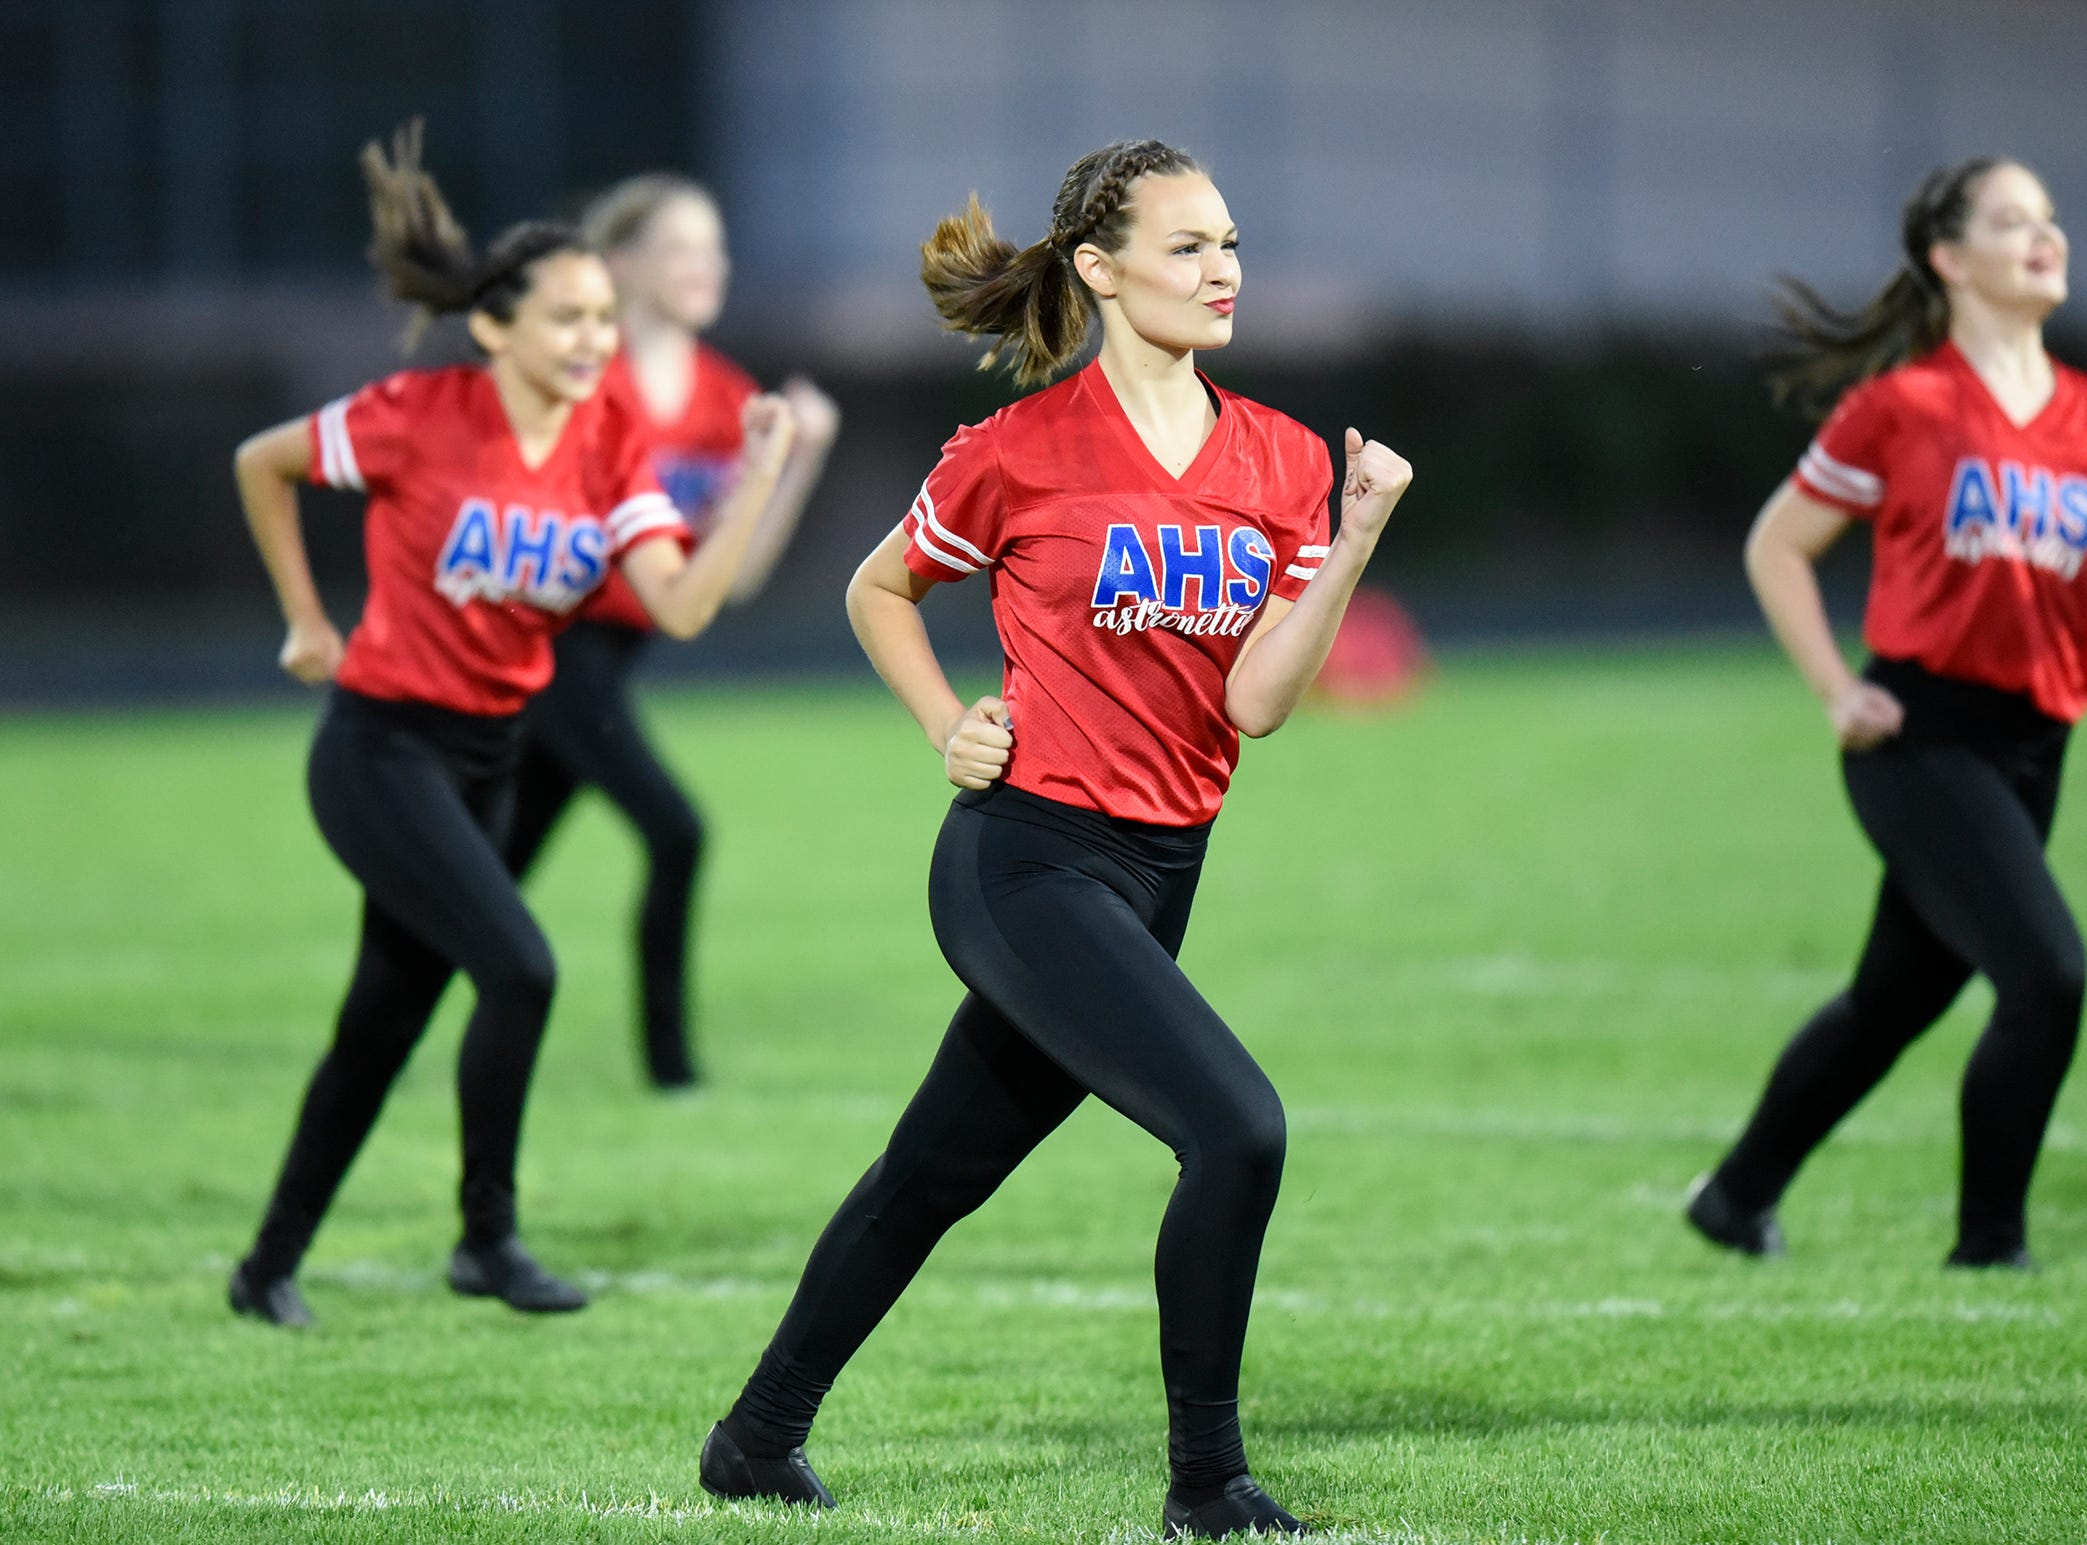 Apollo dance team members perform at halftime during the Friday, Sept. 7, game at Apollo High School in St. Cloud.